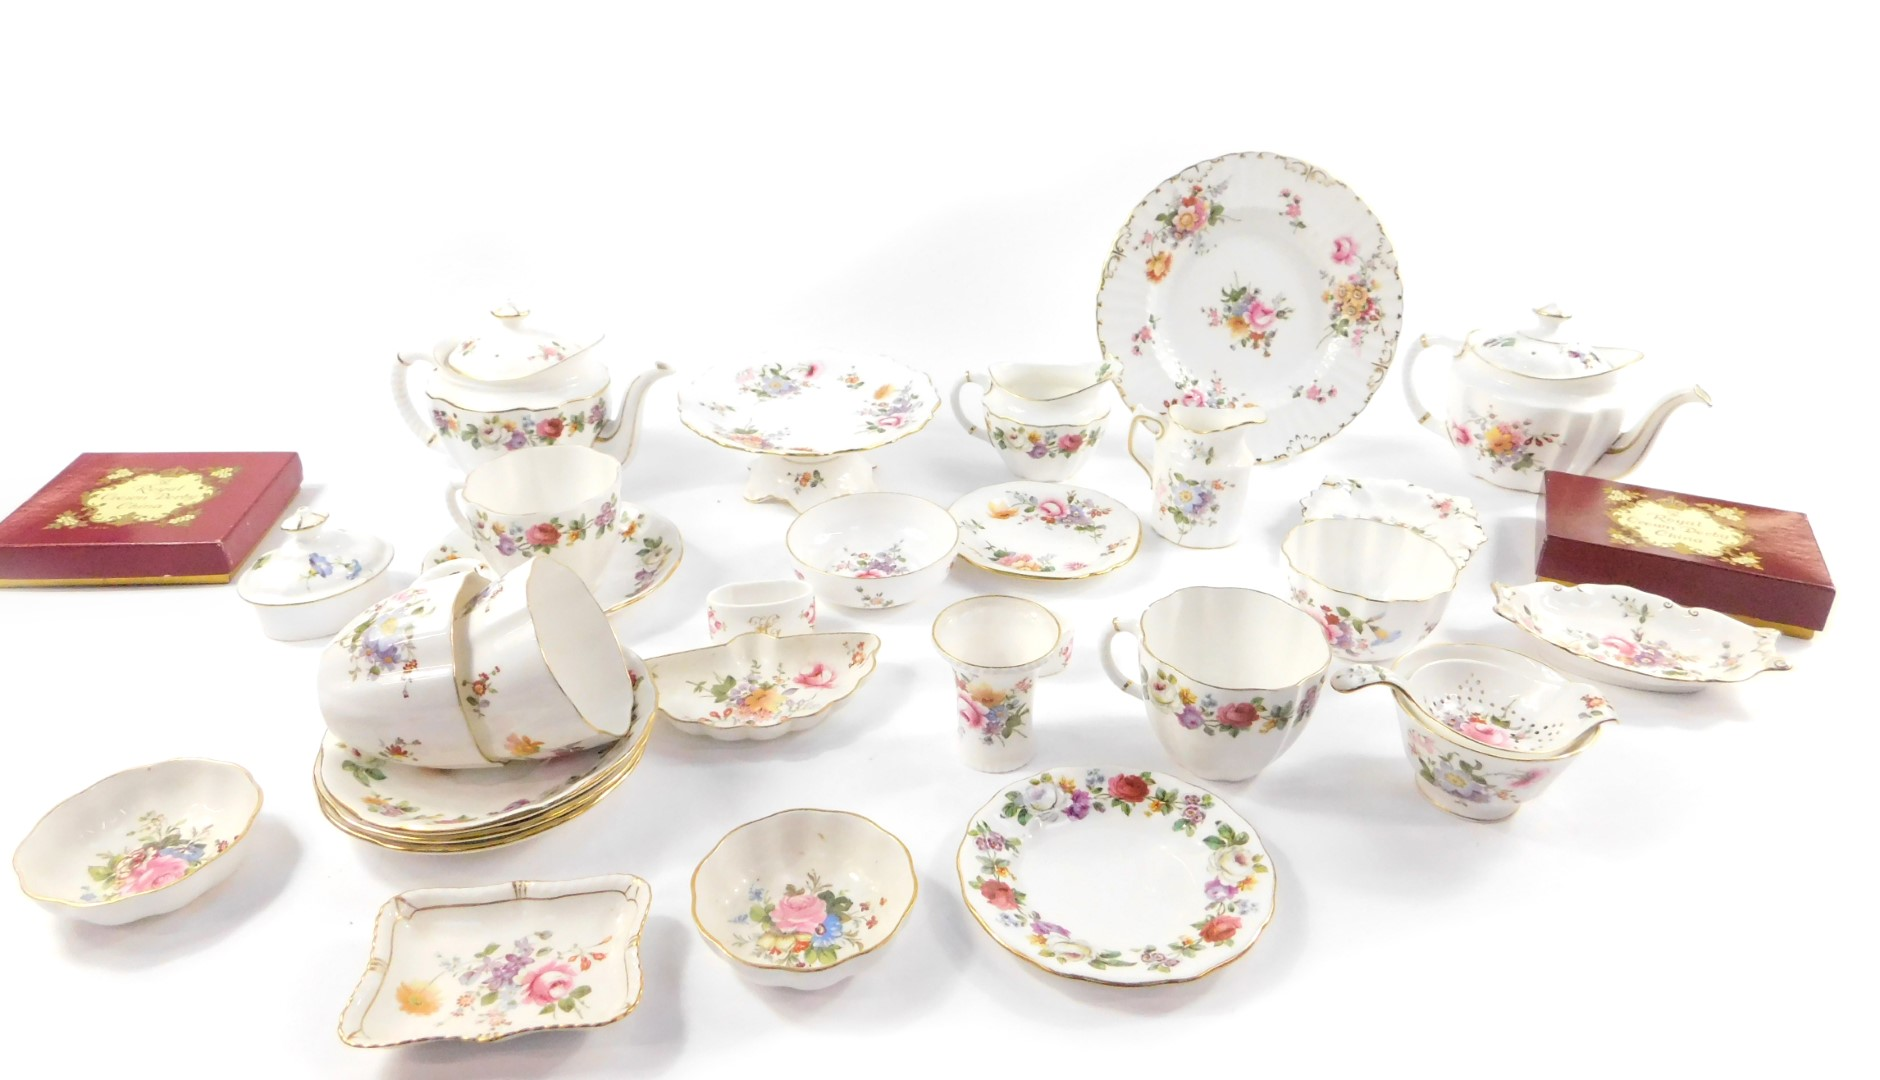 Lot 36 - A group of Royal Crown Derby porcelain decorated in the Derby Posies pattern, including teapots,